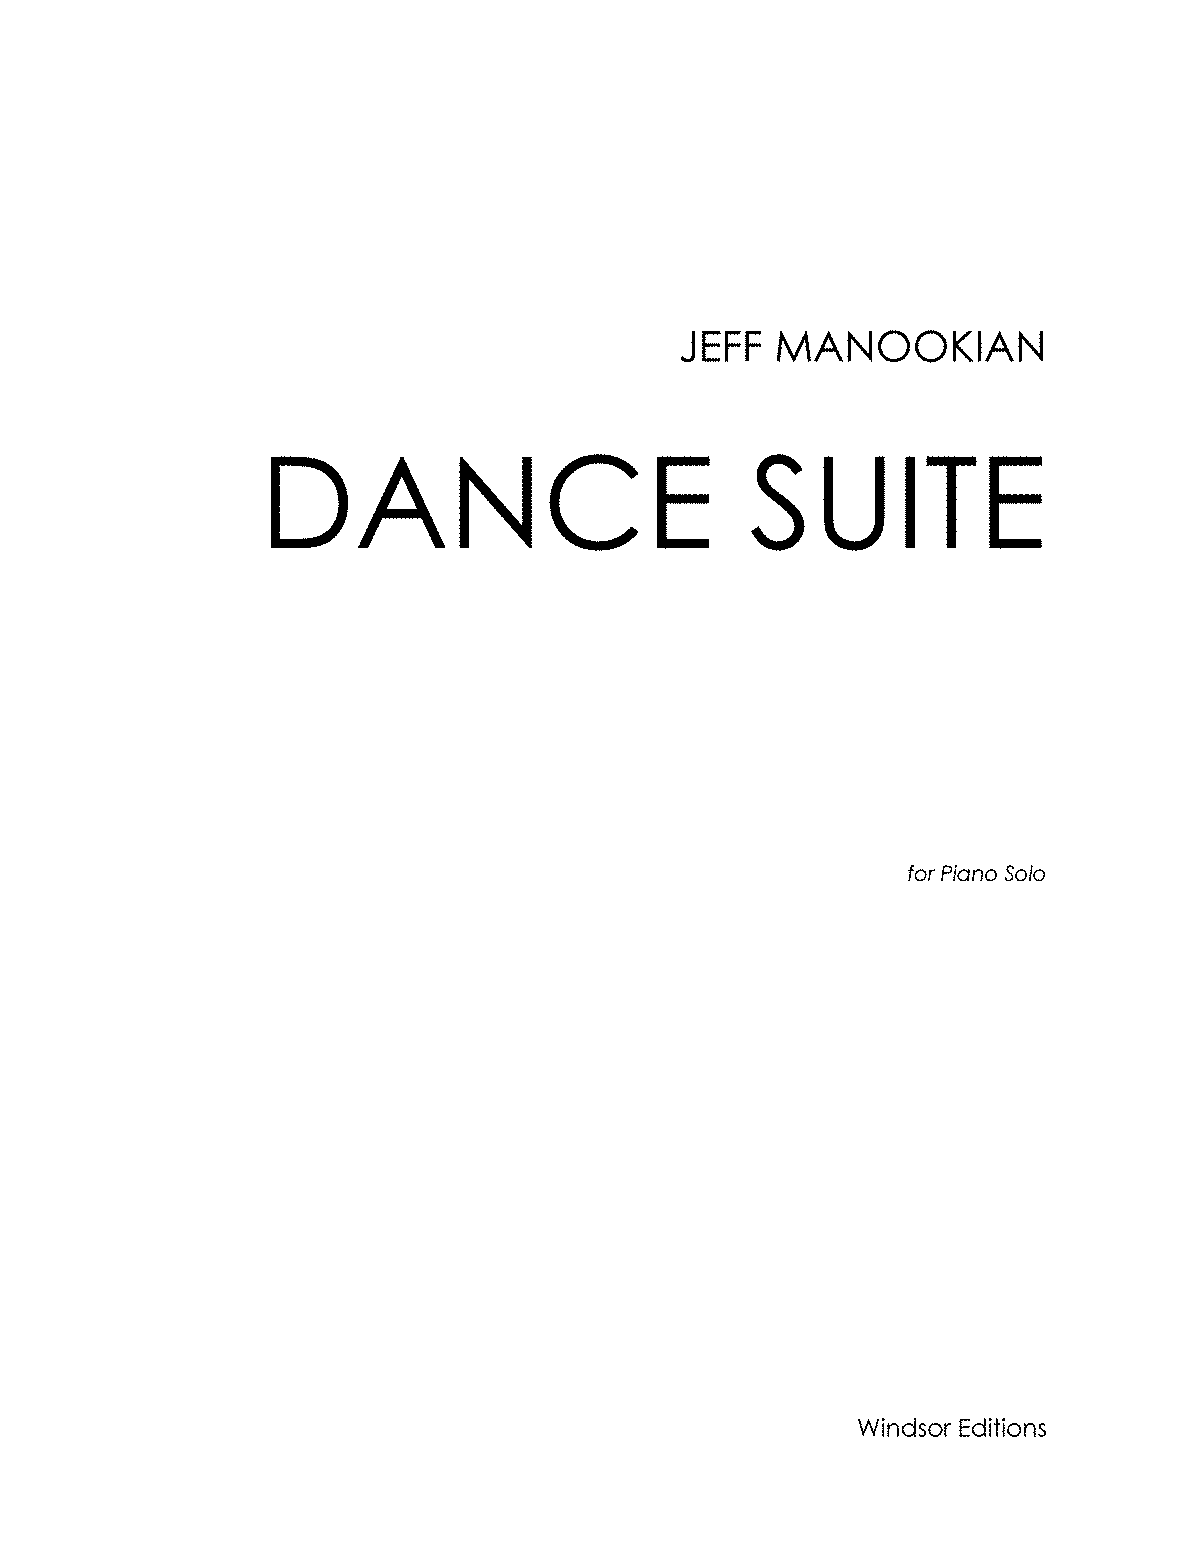 PMLP584777-DANCE SUITE piano score.pdf